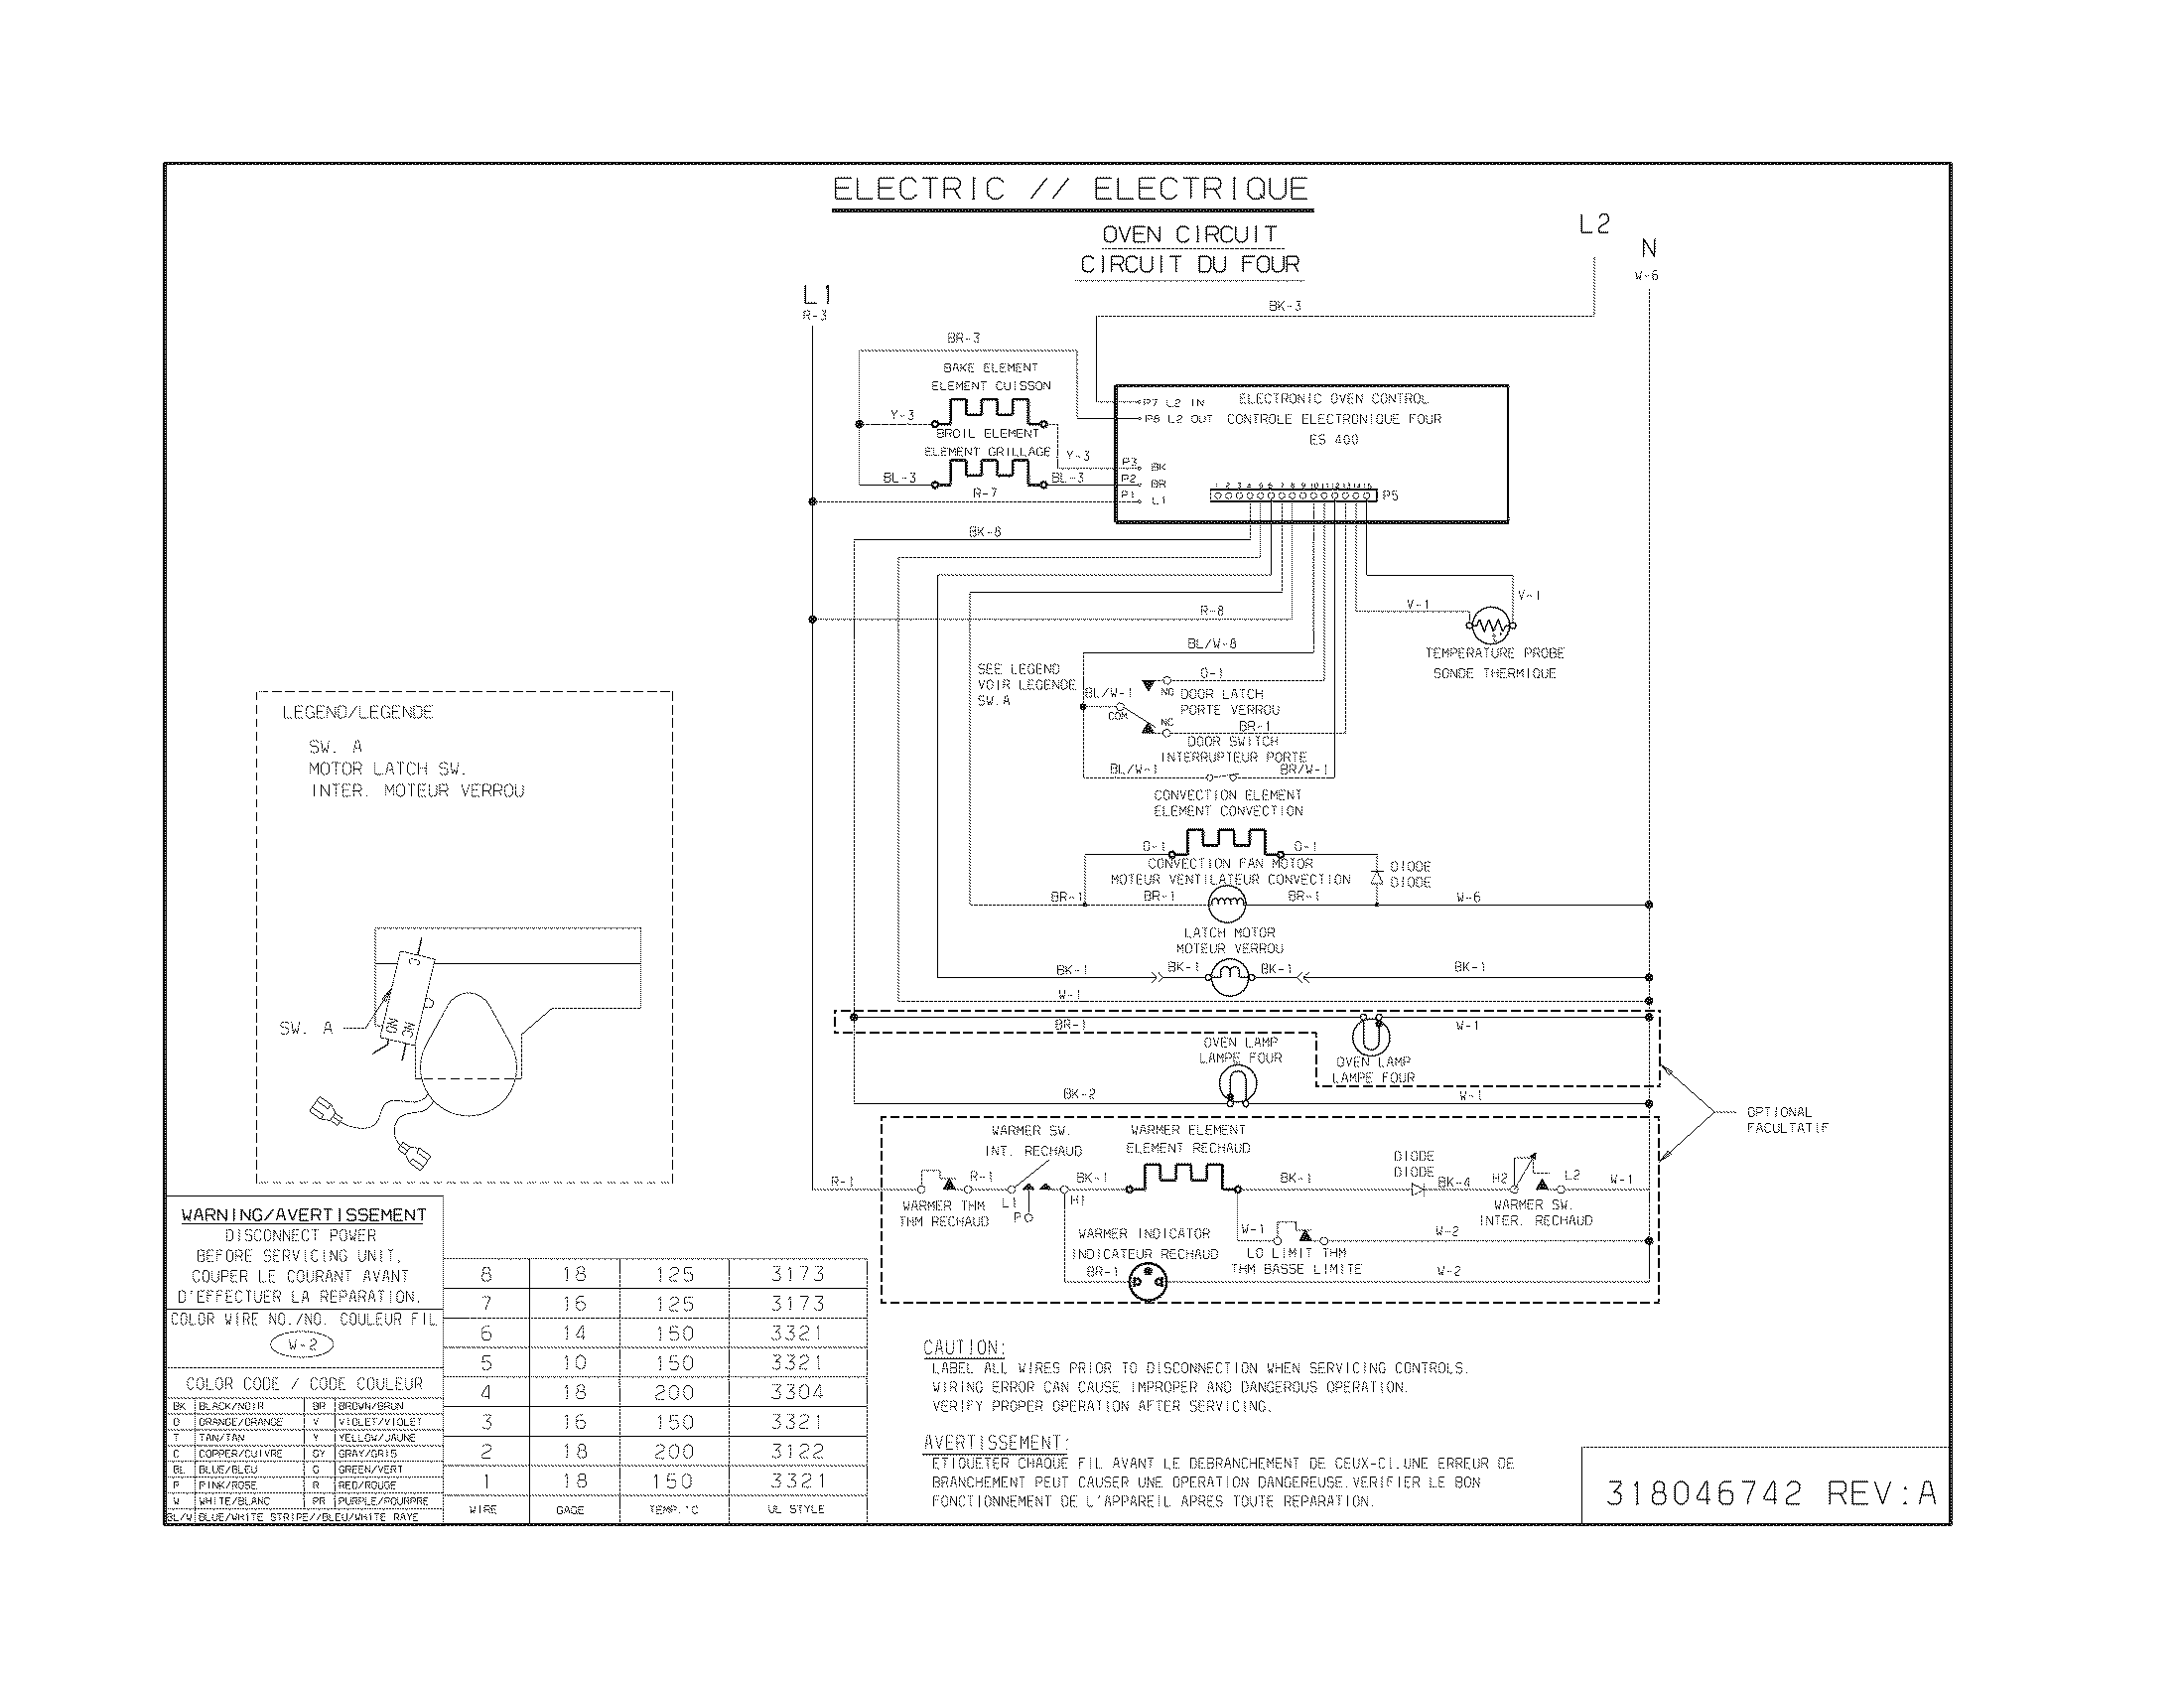 DIAGRAM] Electric Oven Wiring Diagram Pglef385cs2 Range FULL Version HD  Quality Pglef385cs2 Range - KENDRICKSCHEMATIC2926.BEAUTYWELL.ITkendrickschematic2926.beautywell.it